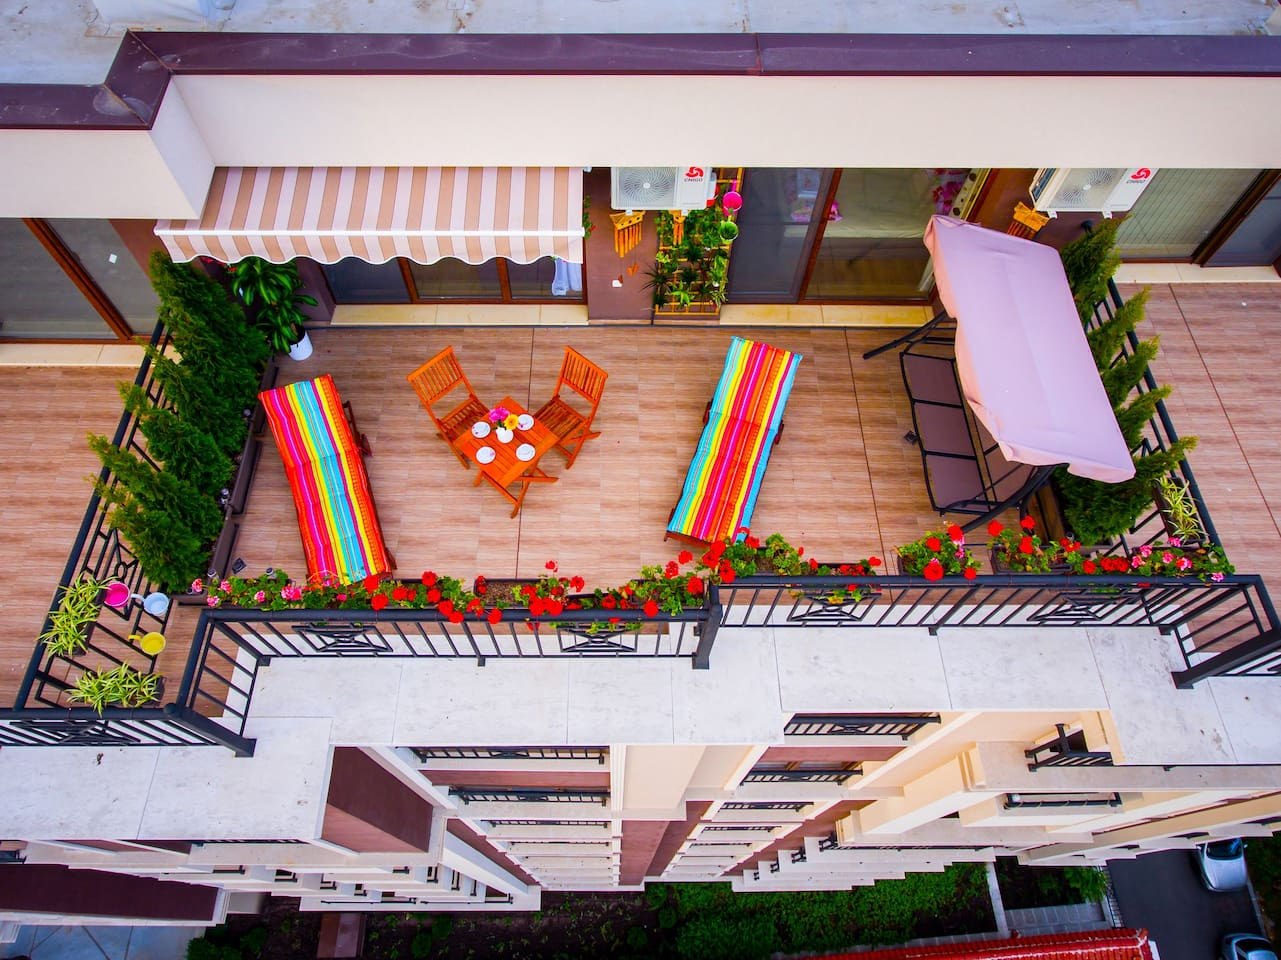 The terrace is lovely with a size of 20 square meters. It is equipped with two sun loungers, a swing, a table and two chairs, as well as many beautiful flowers.